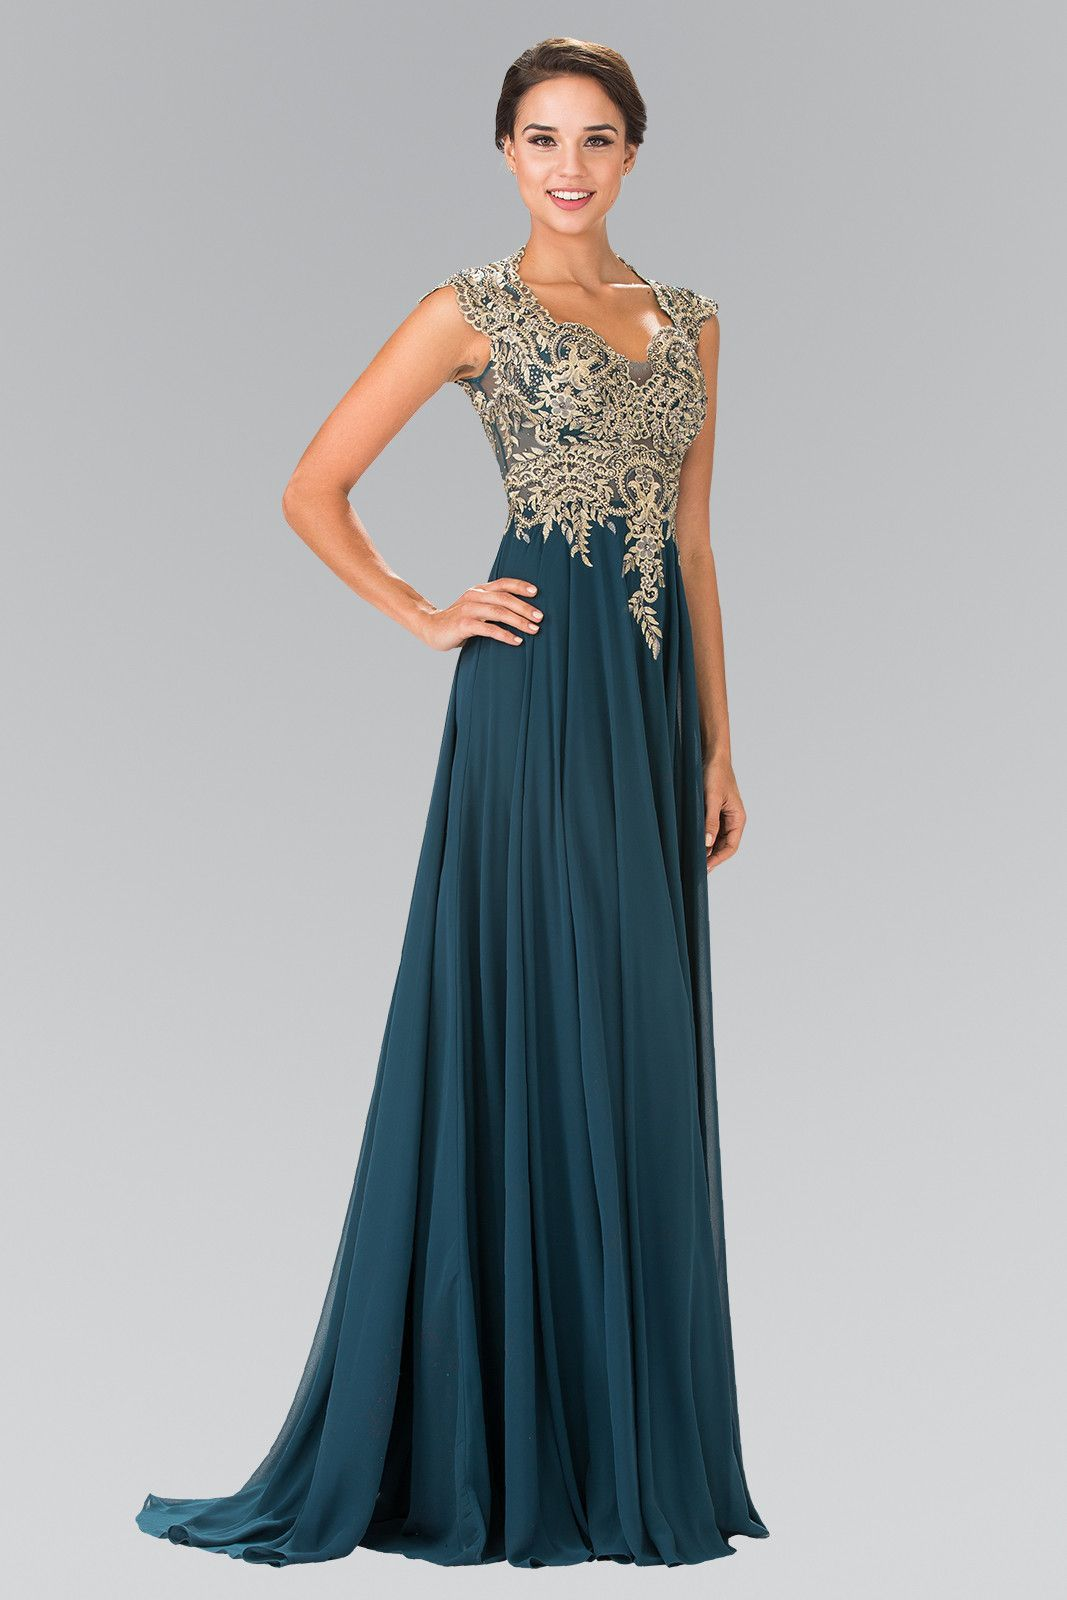 Long sleeveless dress with gold applique by elizabeth k